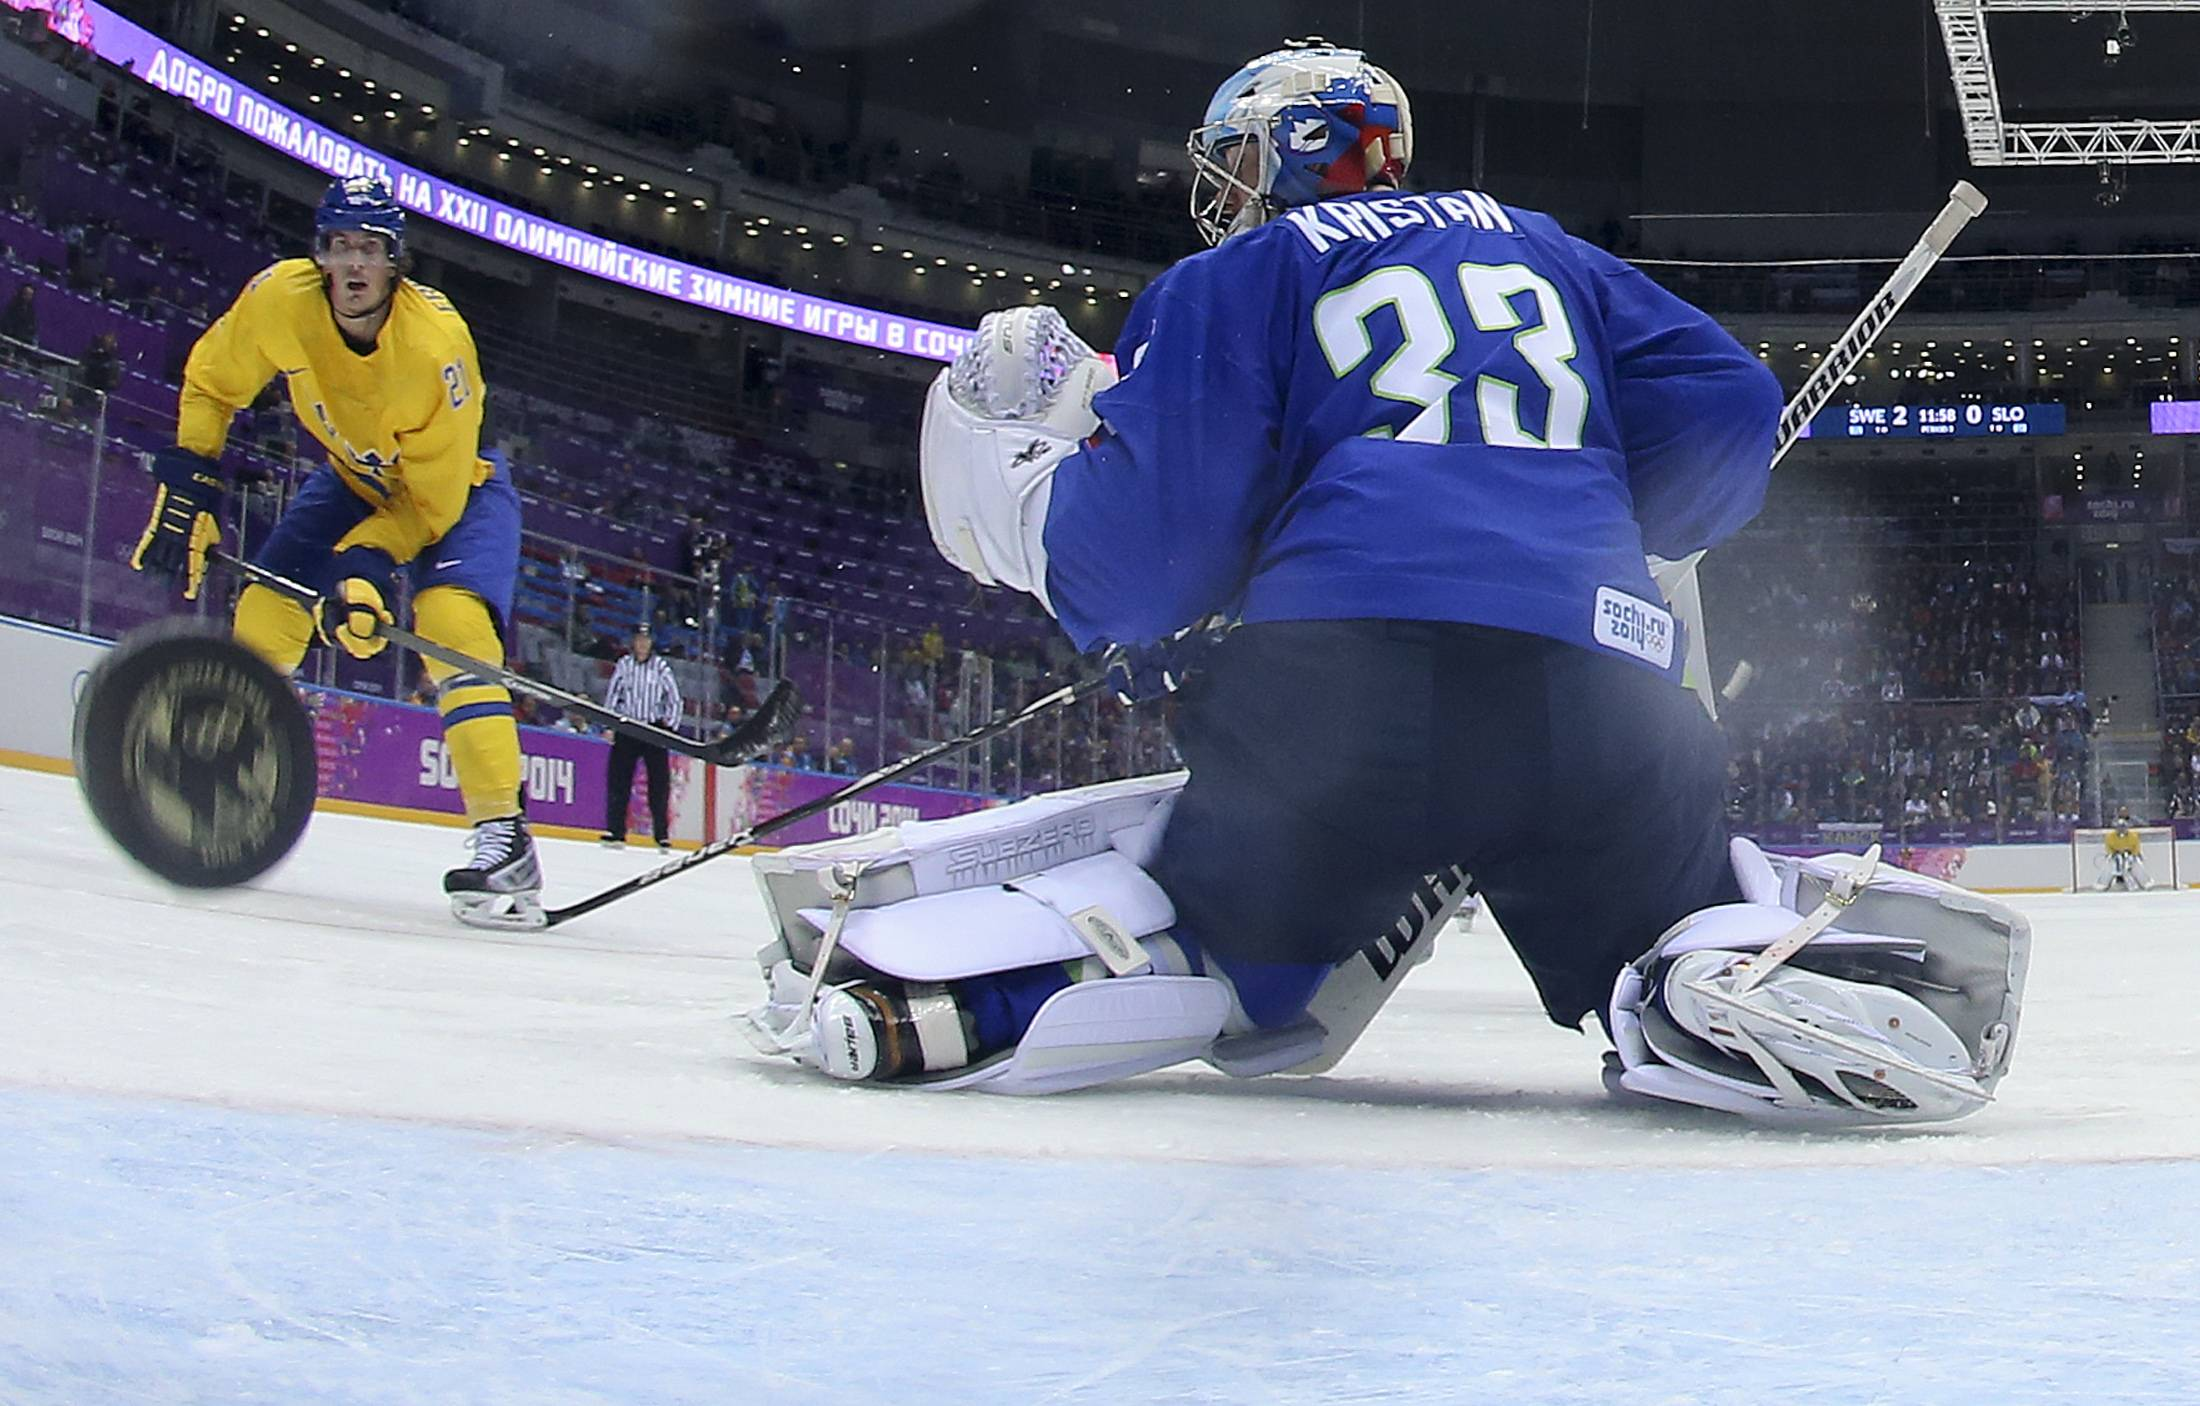 Sweden forward Loui Eriksson shoots and scores against Slovenia goaltender Robert Kristan in the third period of a men's ice hockey game at the 2014 Winter Olympics, Wednesday, Feb. 19, 2014, in Sochi, Russia. Sweden won 5-0 to advance to the semifinals. (AP Photo/Martin Rose, Pool)